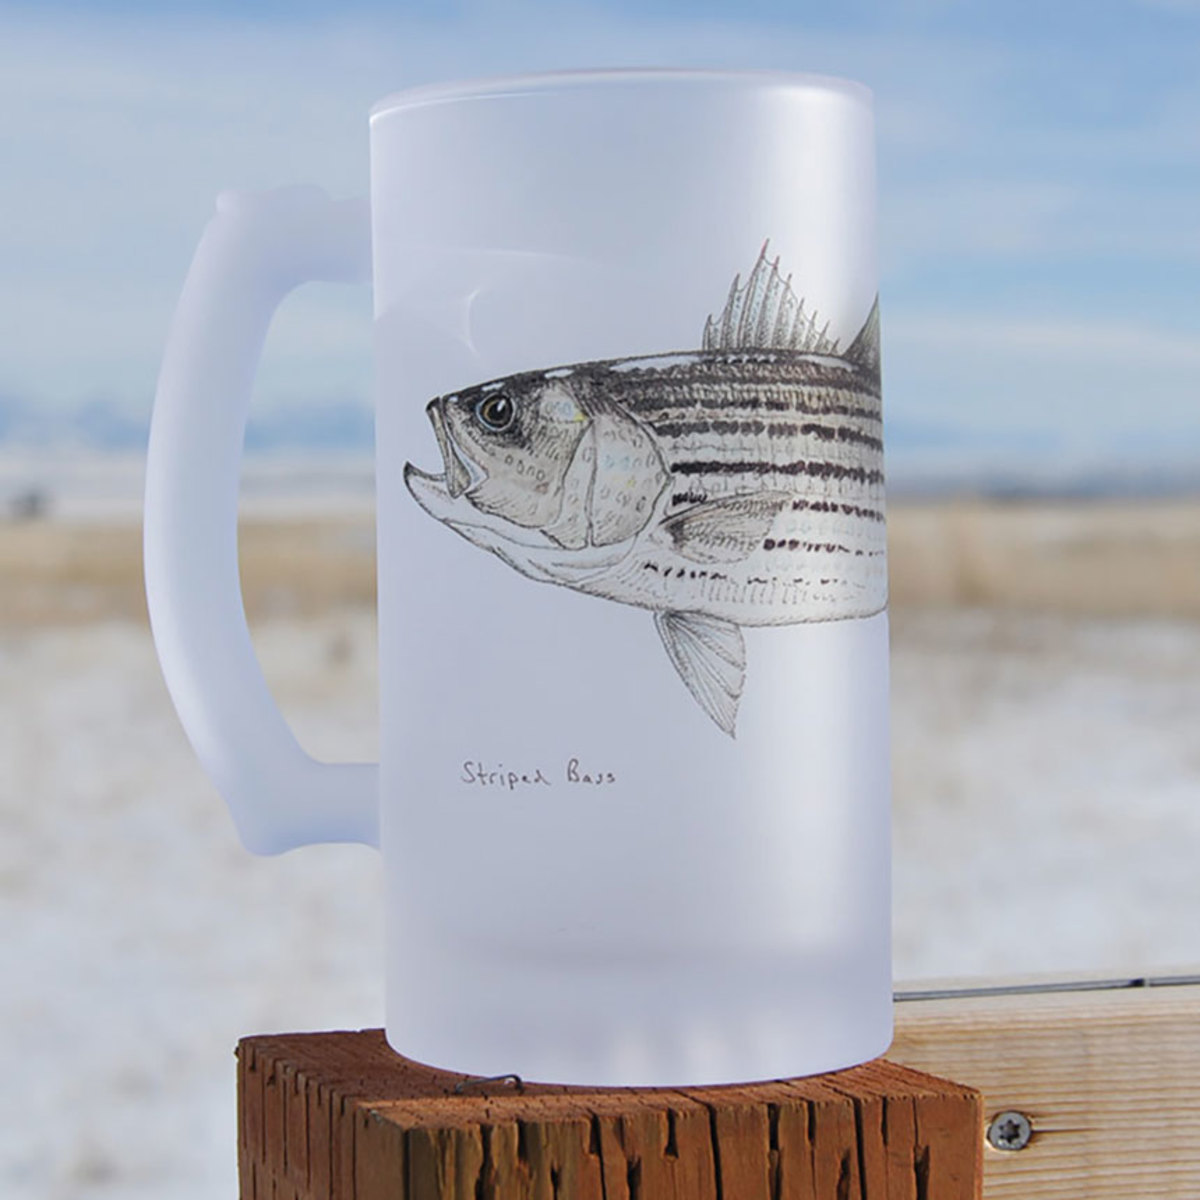 striped-bass-frosted-mug